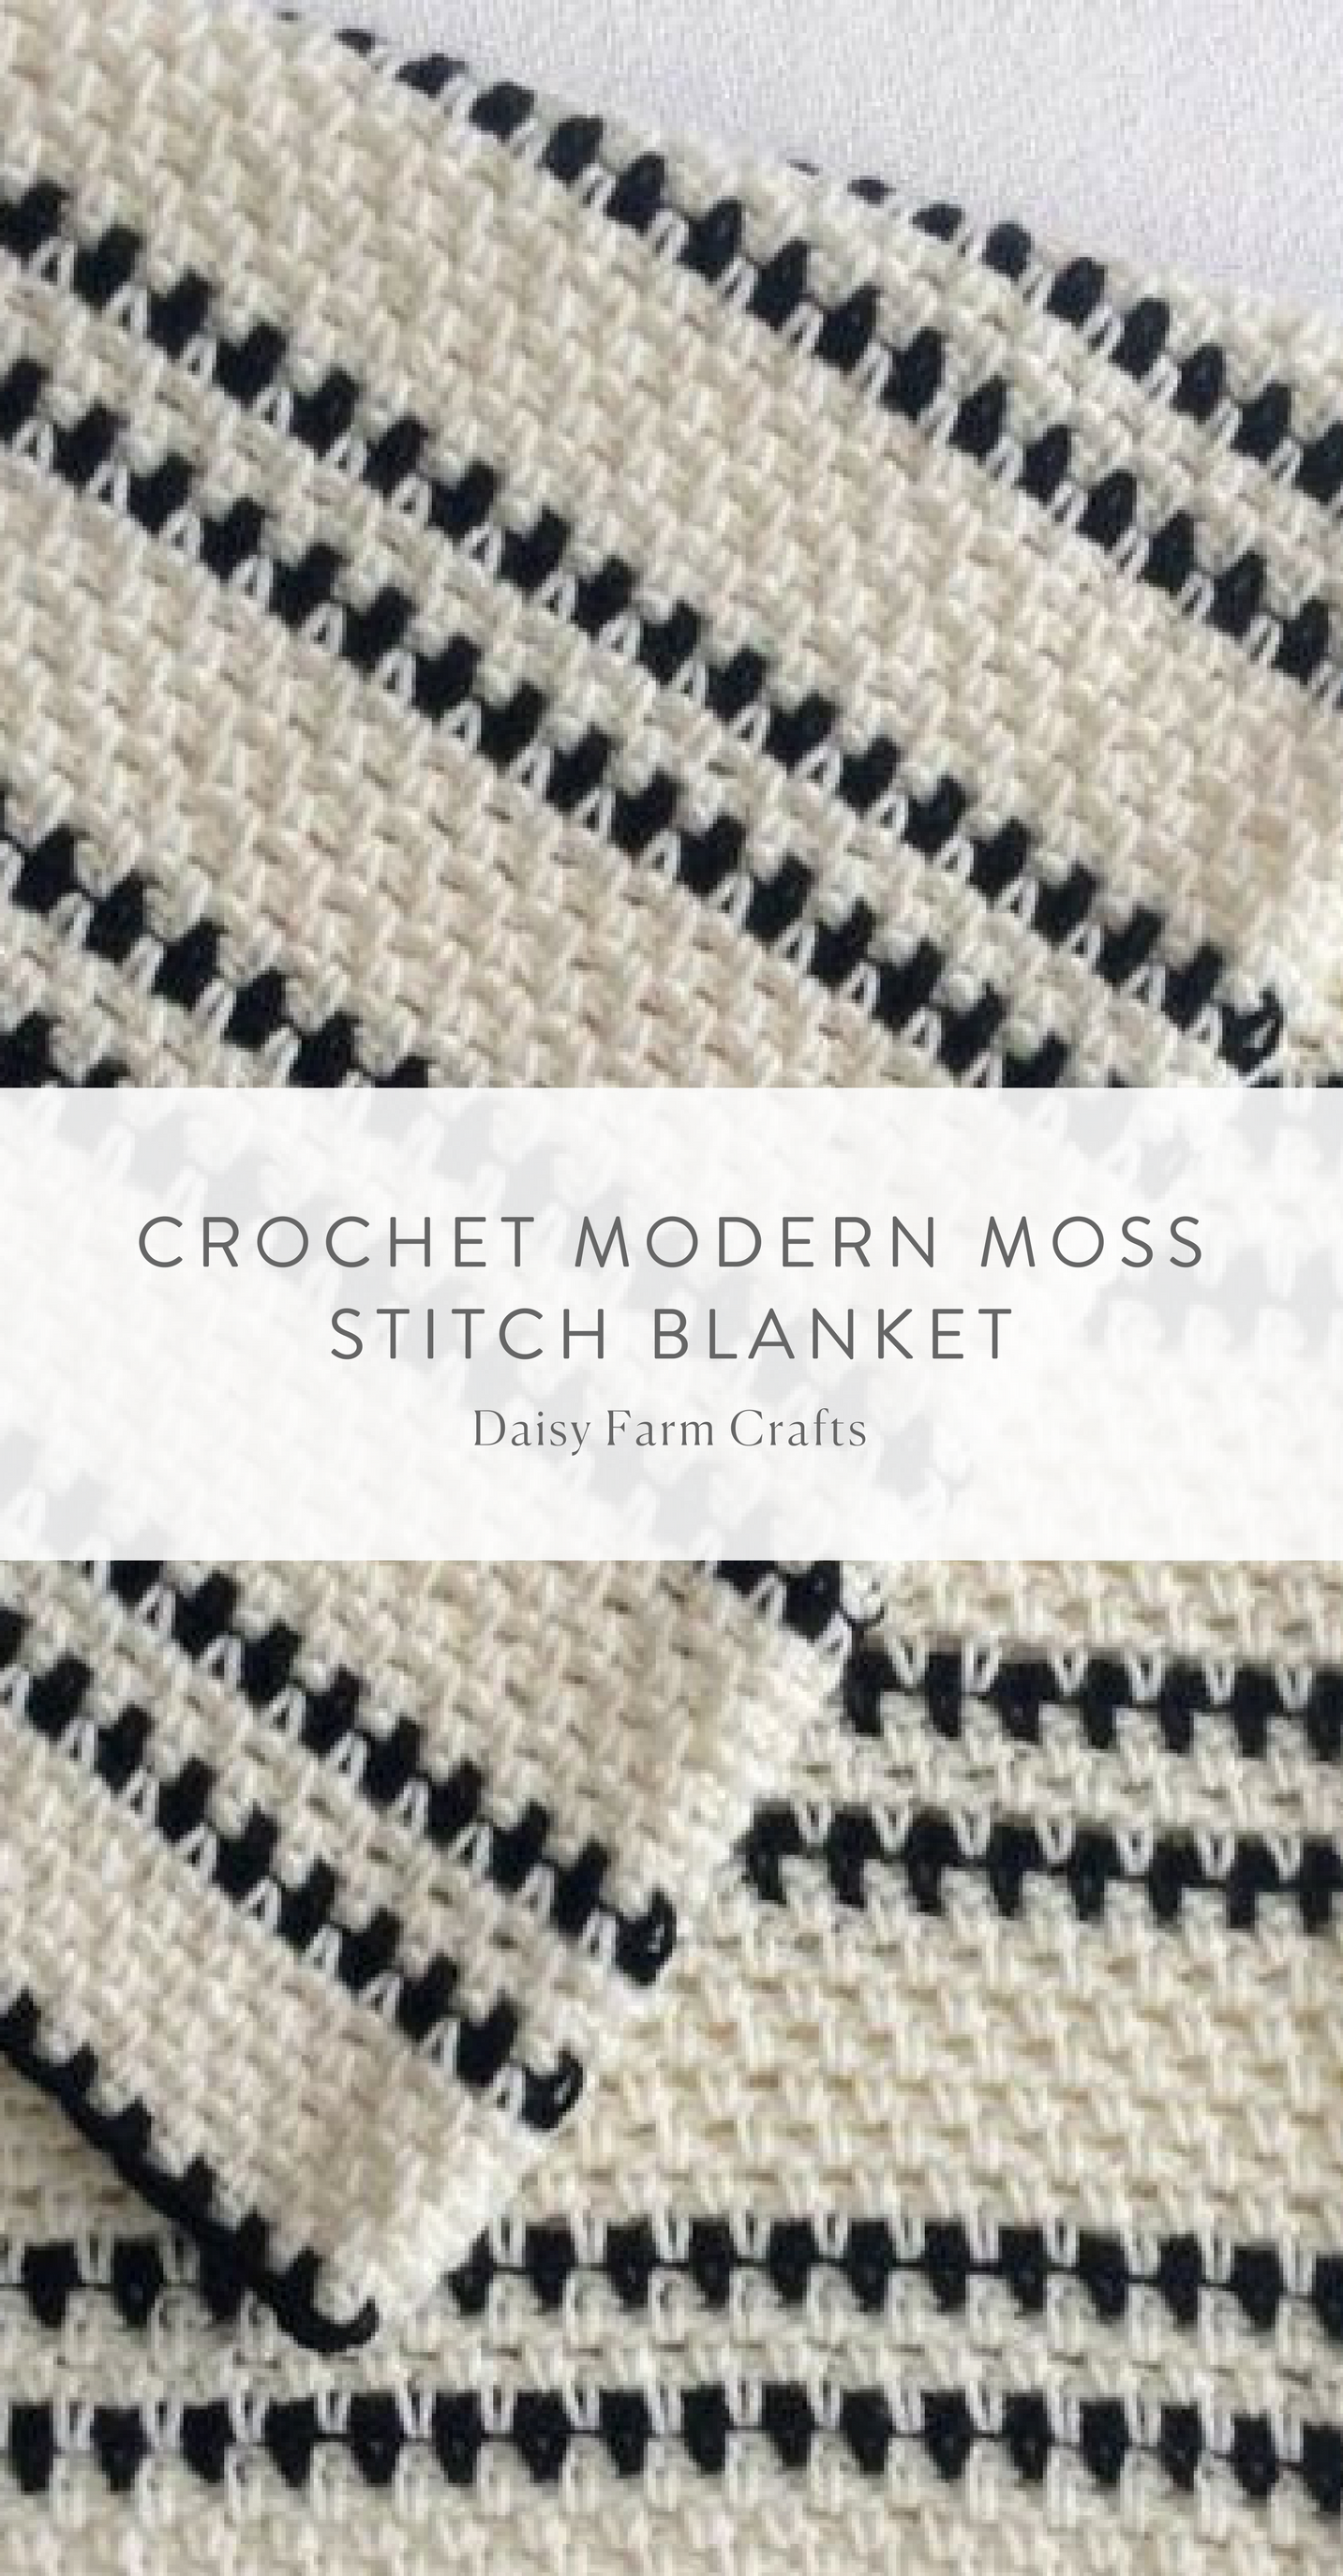 Free Pattern - Crochet Modern Moss Stitch Blanket | crafts | Pinterest